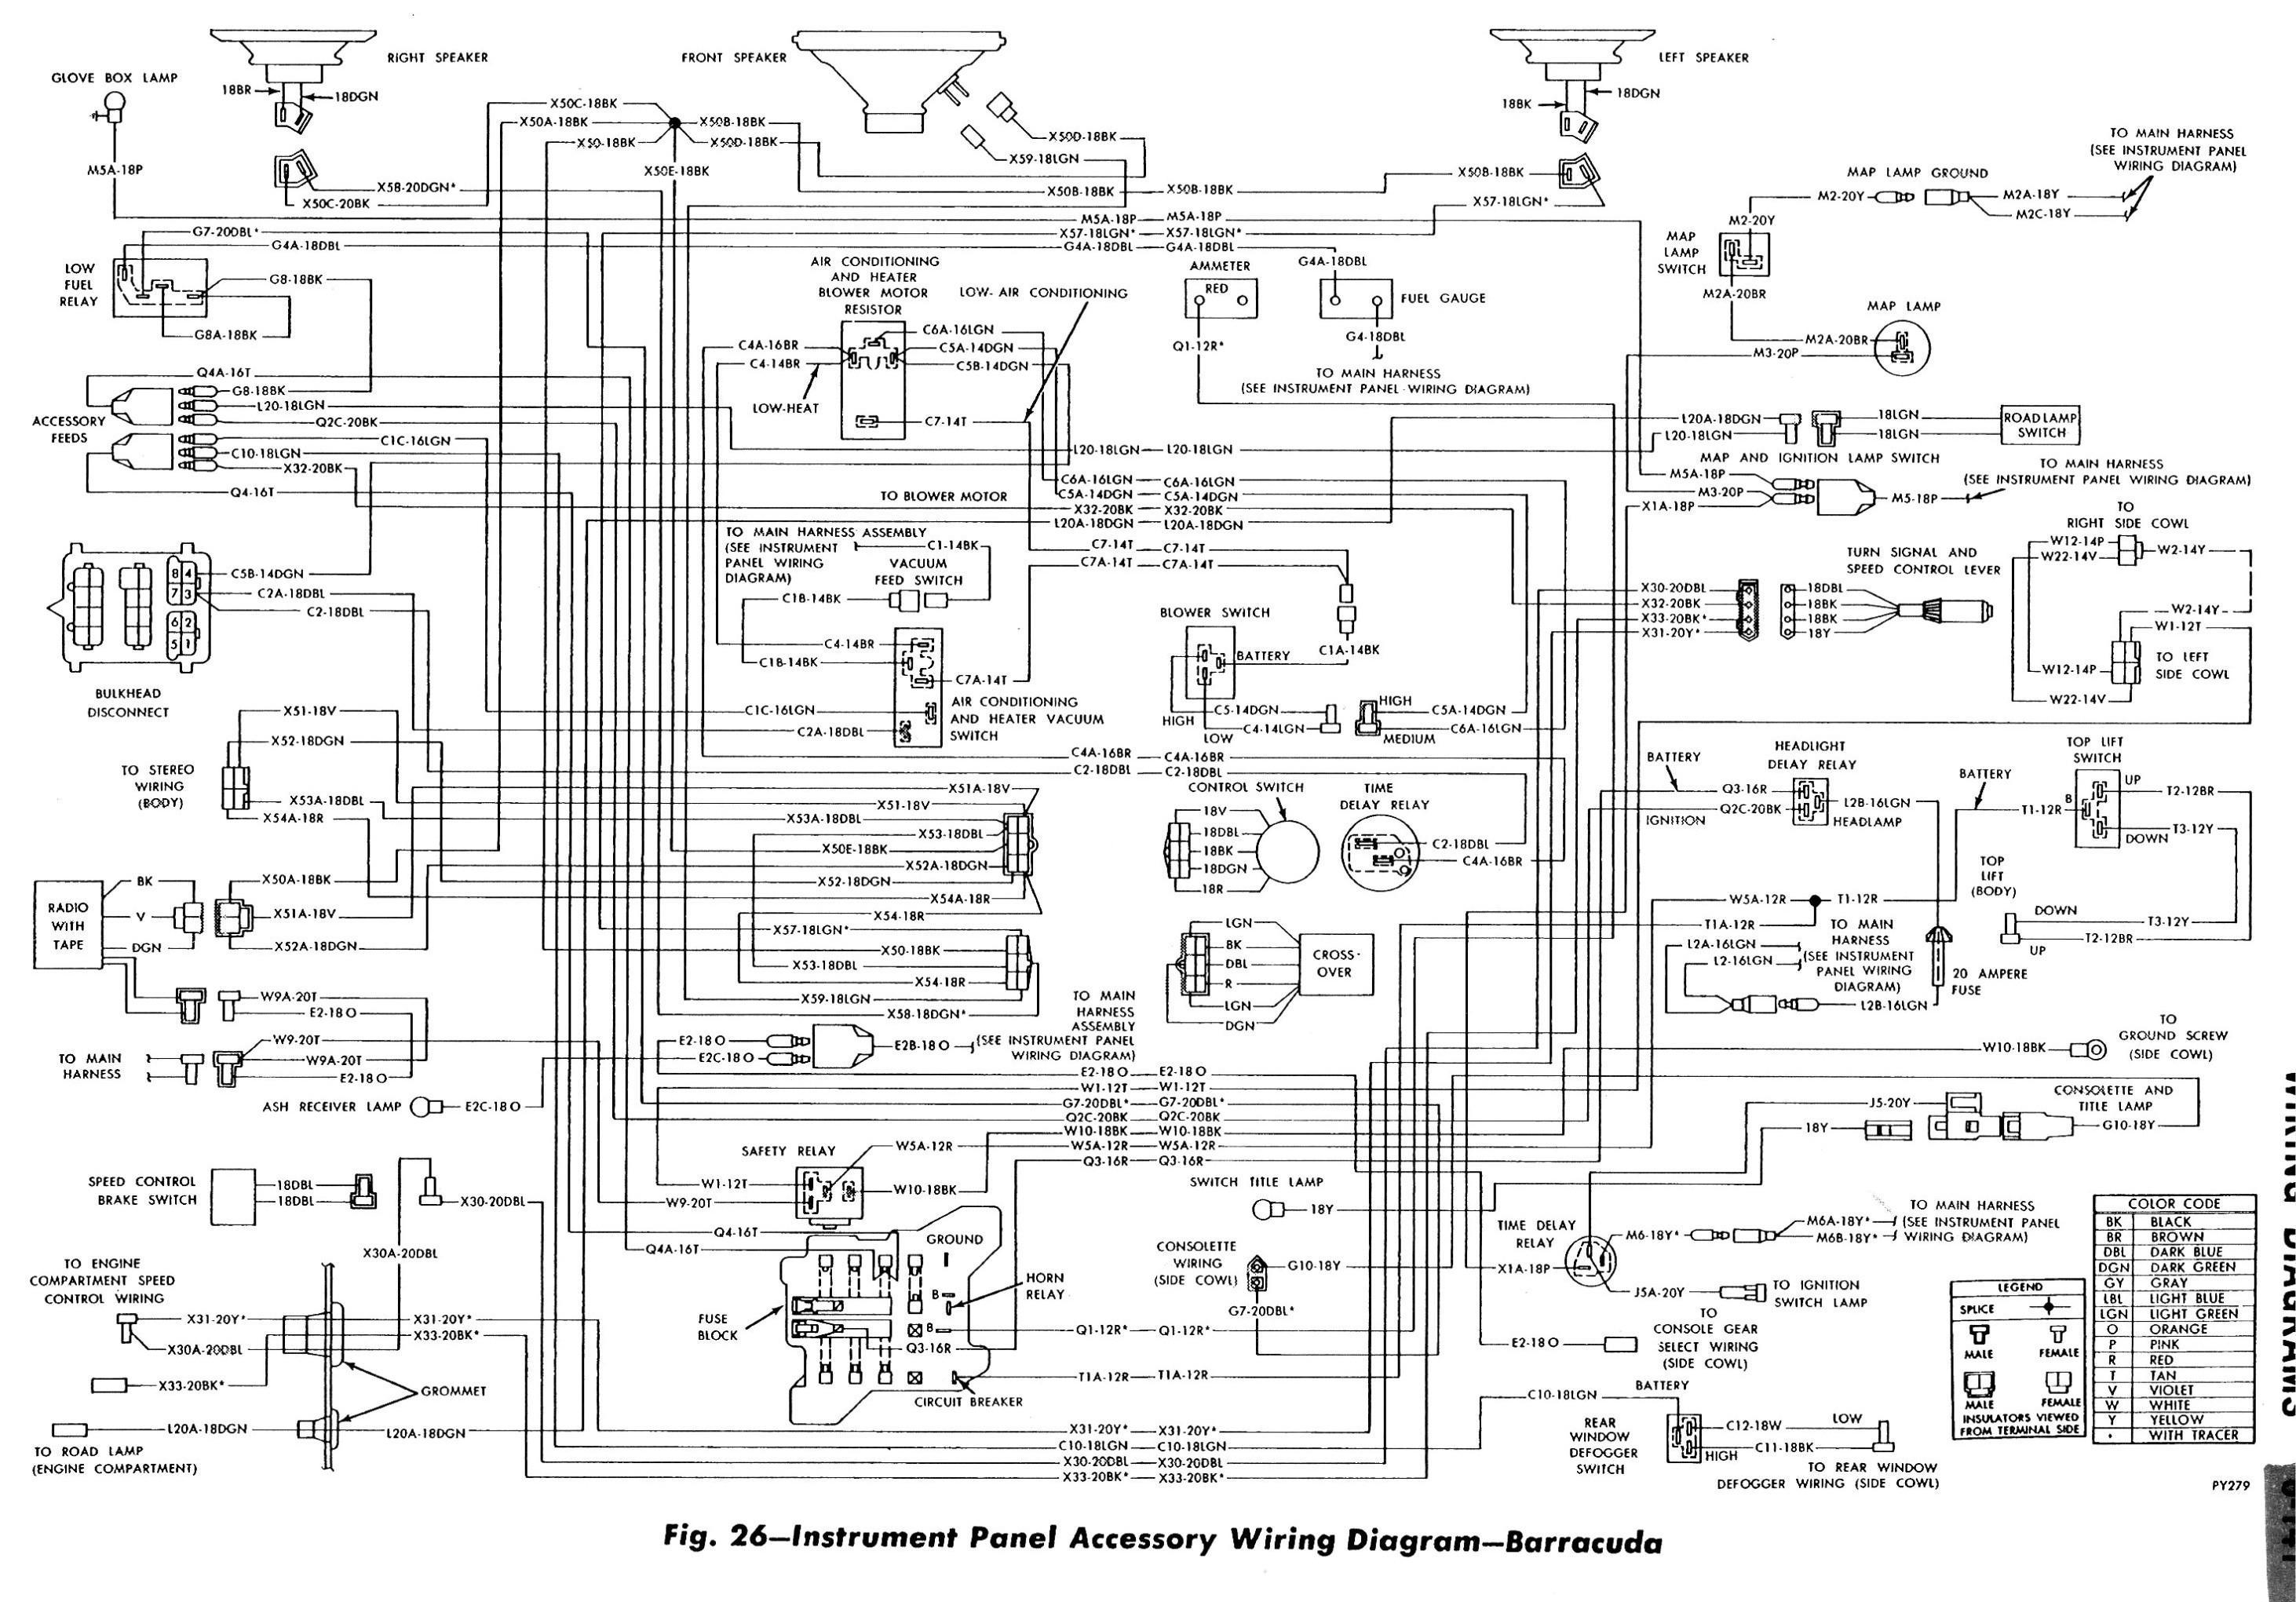 1966 Plymouth Barracuda Fuse Box Wiring Painless Wiring Diagram Turn Signals For Wiring Diagram Schematics